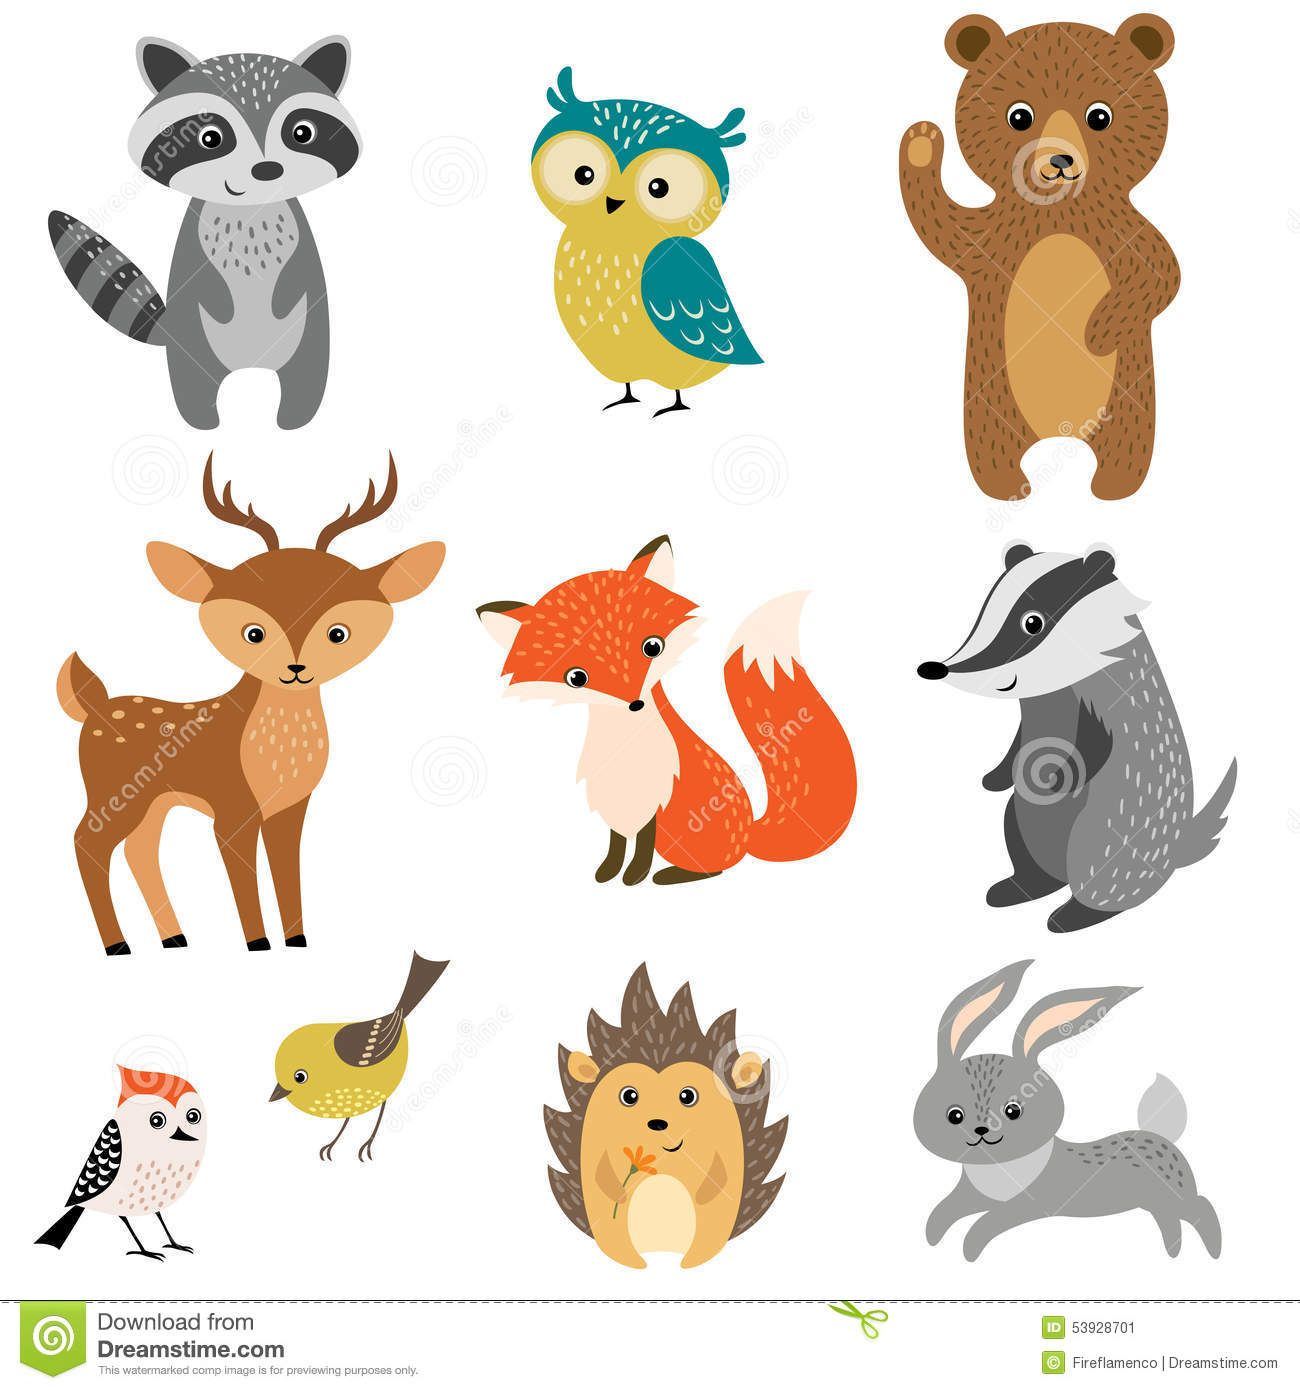 Cute Forest Animals Download From Over 59 Million High